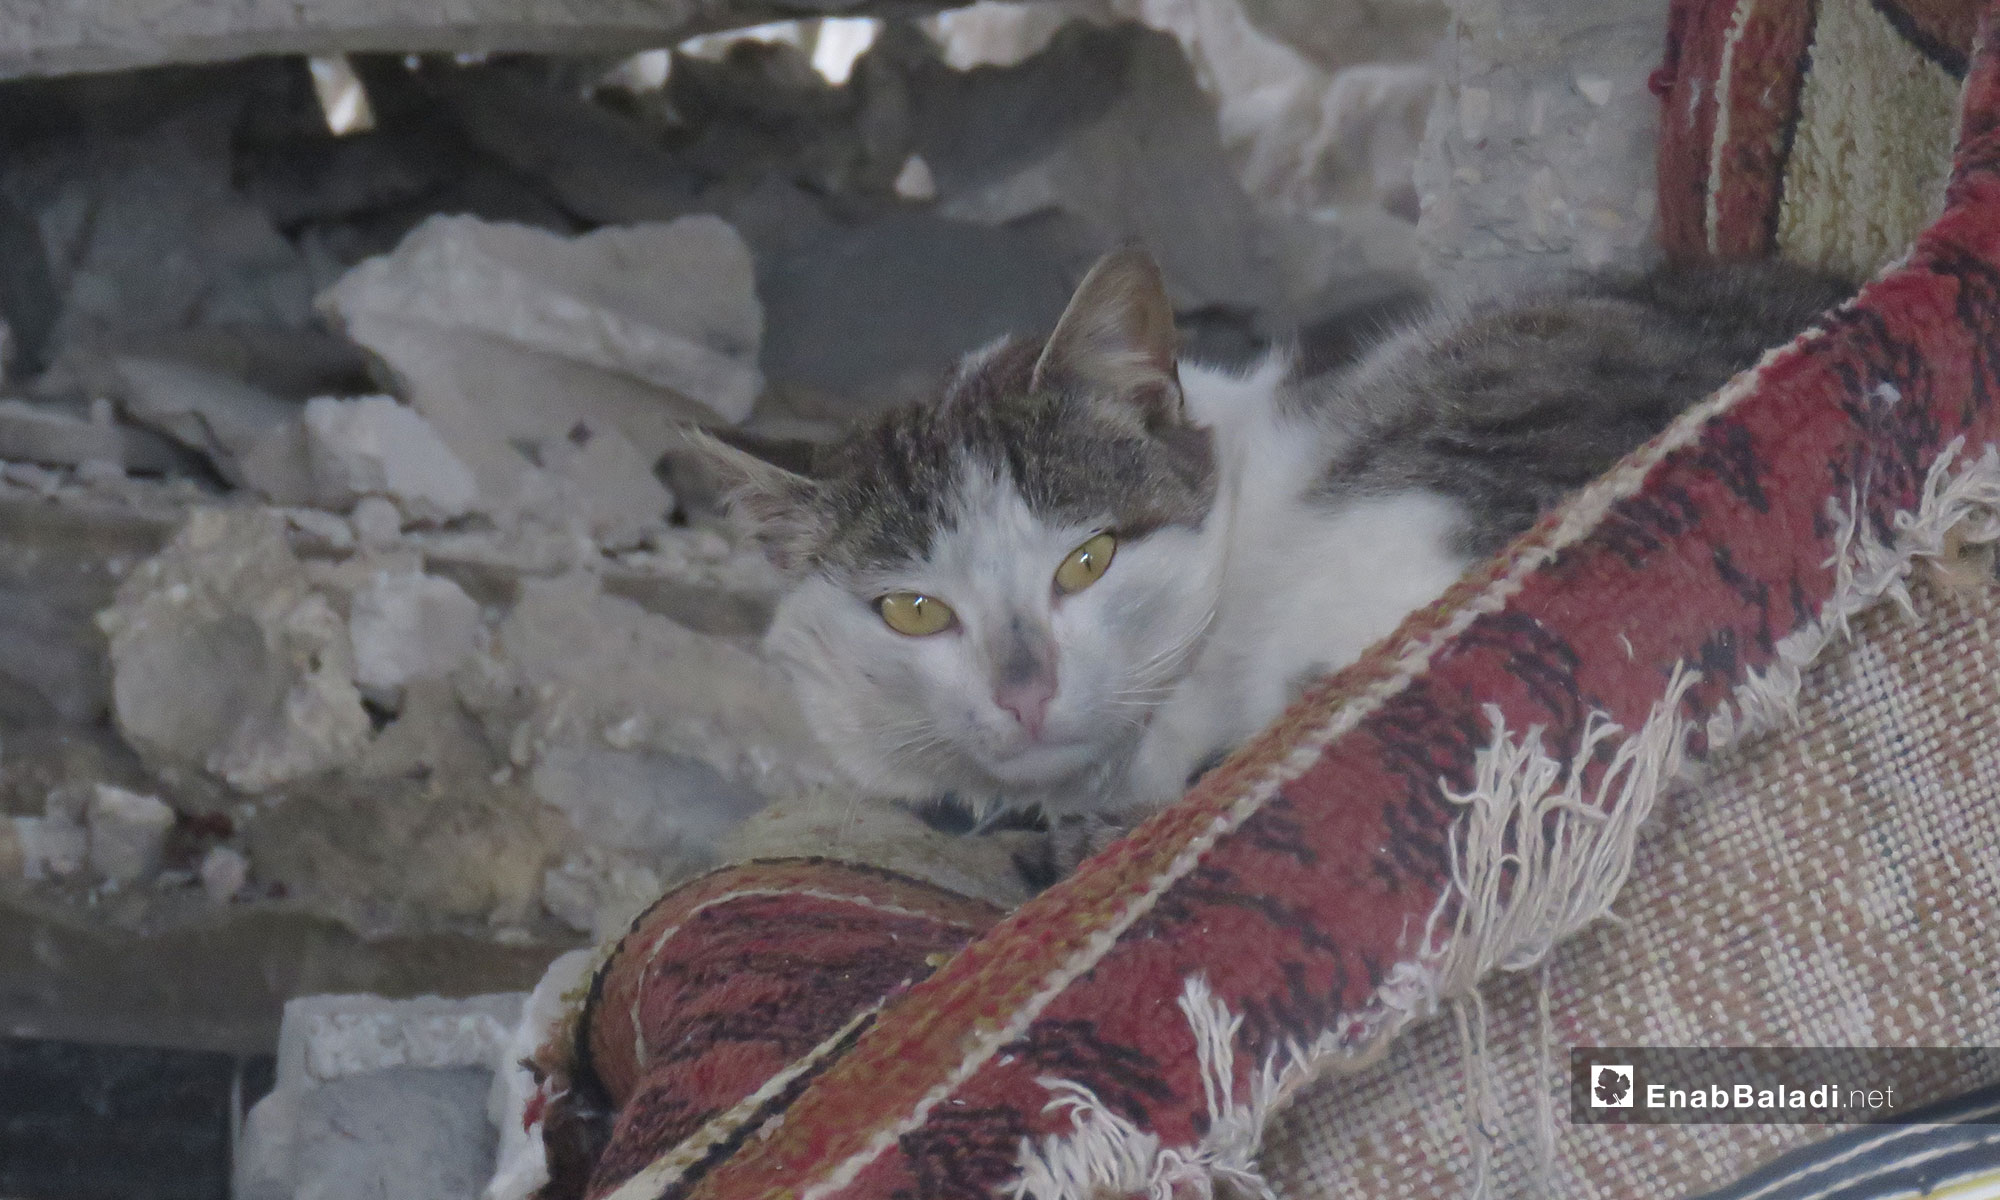 A cat hiding in the debris of the houses in the village of al-Sharia in al-Ghab Plain, rural Hama – March 31, 2019 (Enab Baladi)